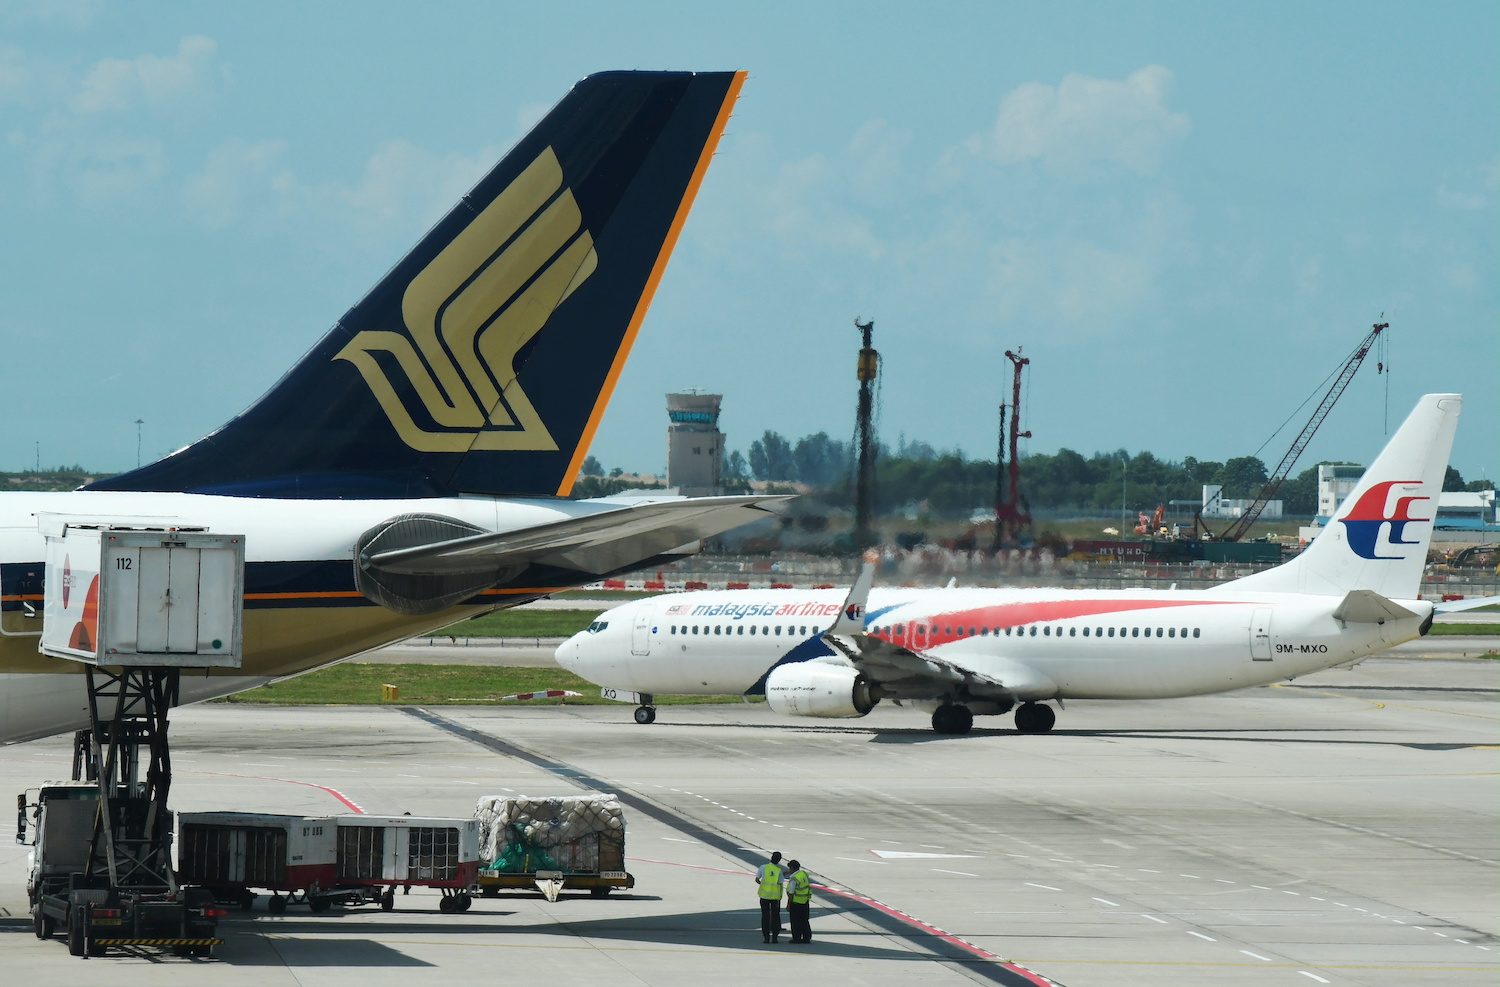 Malaysia Airlines and Singapore Airlines planes are pictured at Changi Airport in Singapore in July 2019. (Reuters File Photo)